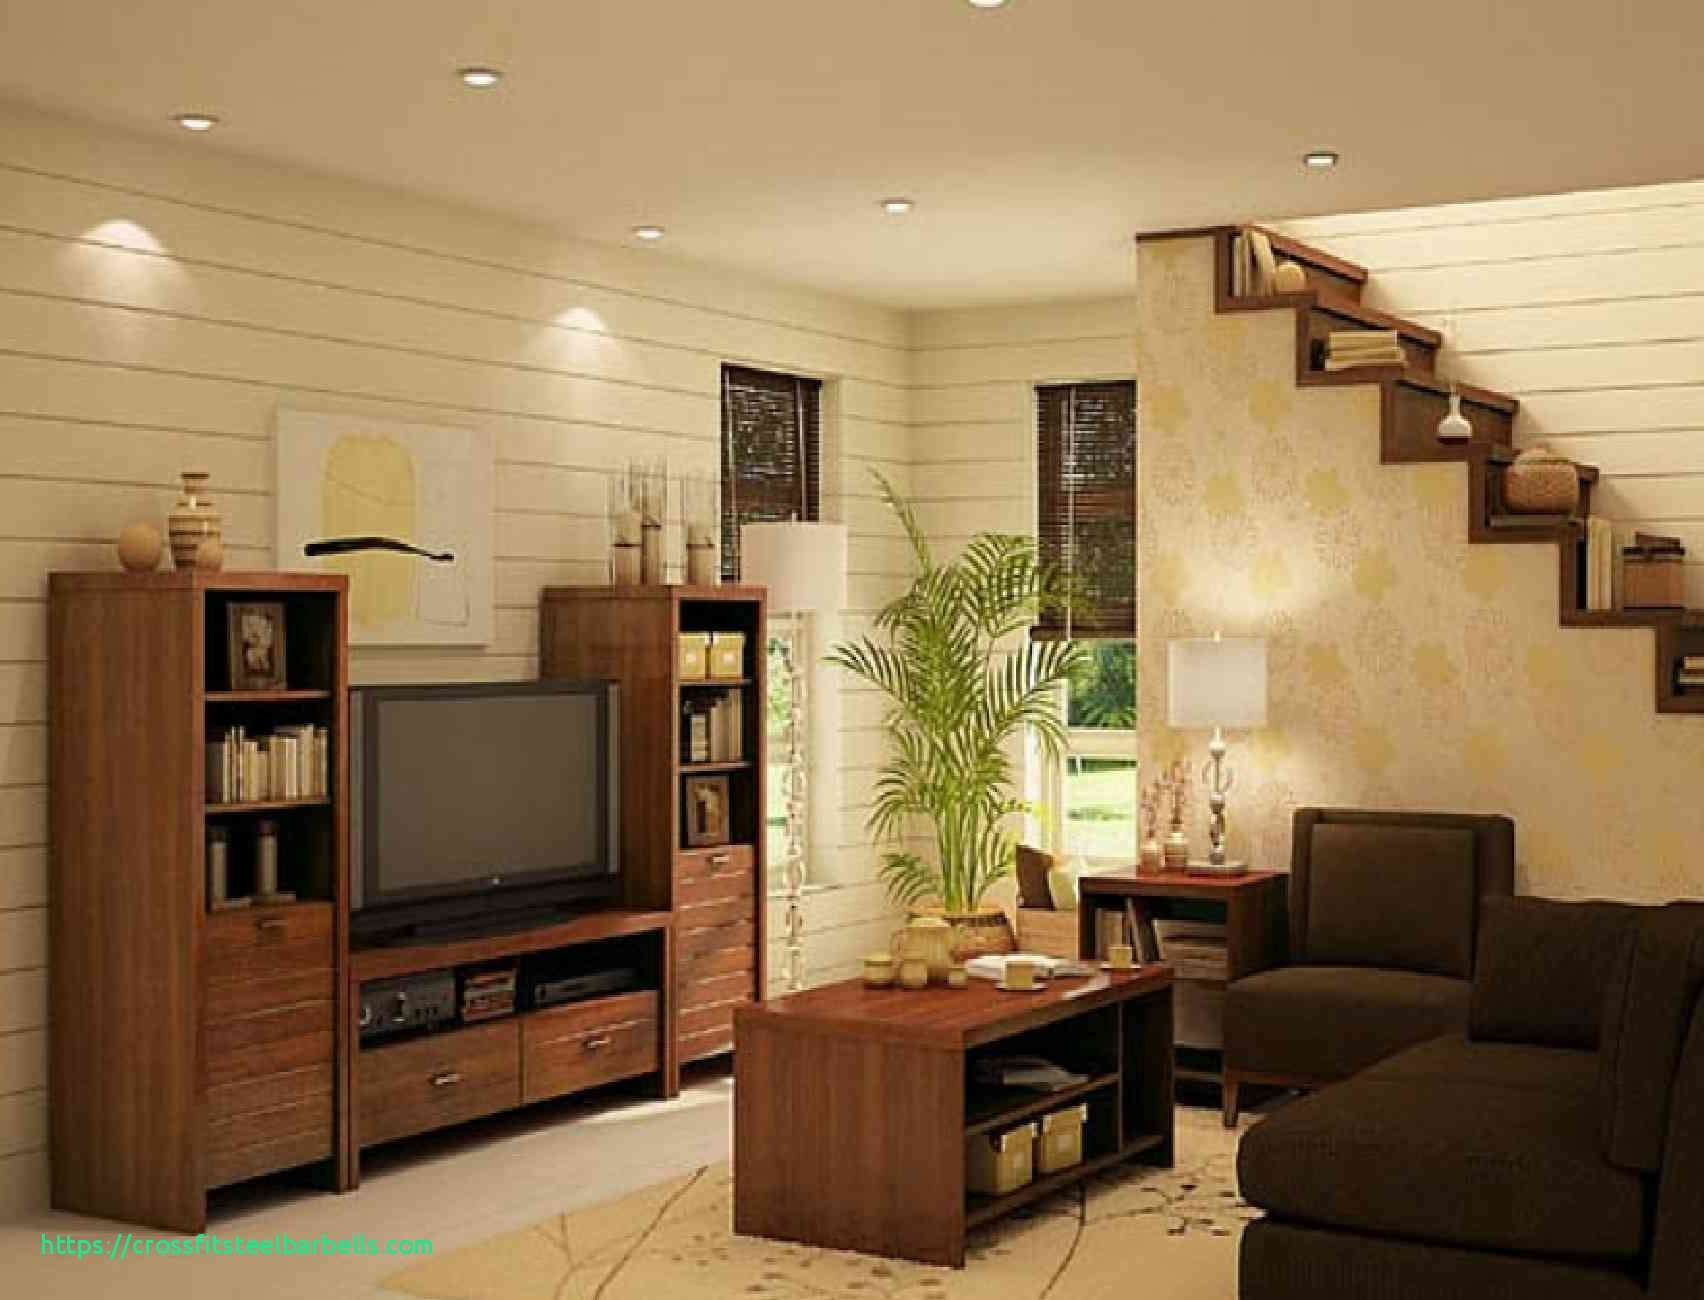 Fresh Interior Design Ideas Indian Style For Small Home Cross Fit Layjao